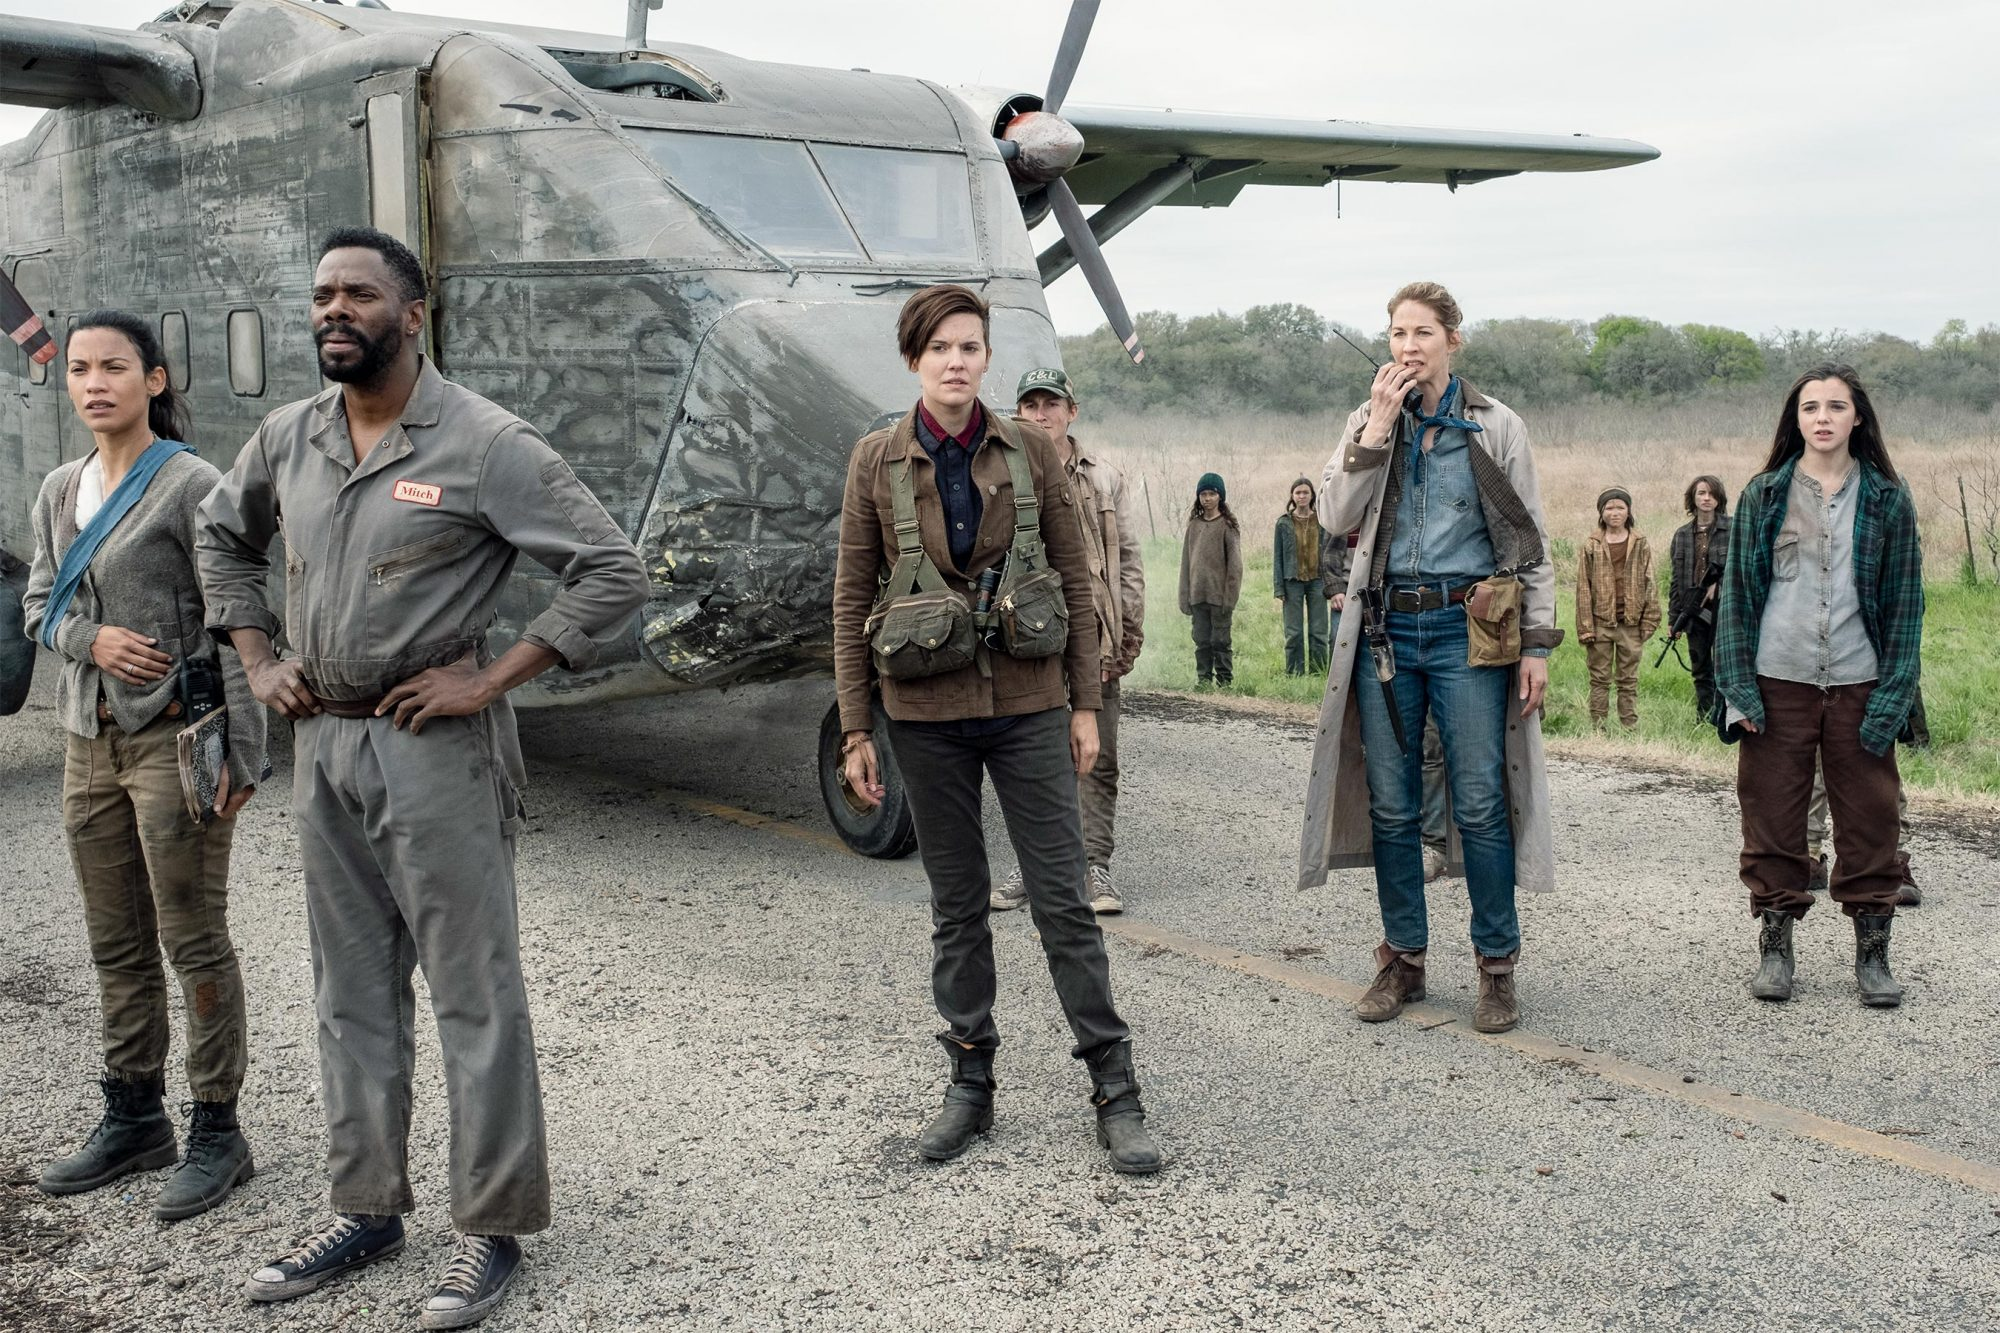 Danay Garcia as Luciana, Colman Domingo as Victor Strand, Maggie Grace as Althea, Ethan Suess as Max, Jenna Elfman as June, Alexa Nisenson as Charlie - Fear the Walking Dead _ Season 5, Episode 8 - Photo Credit: Van Redin/AMC